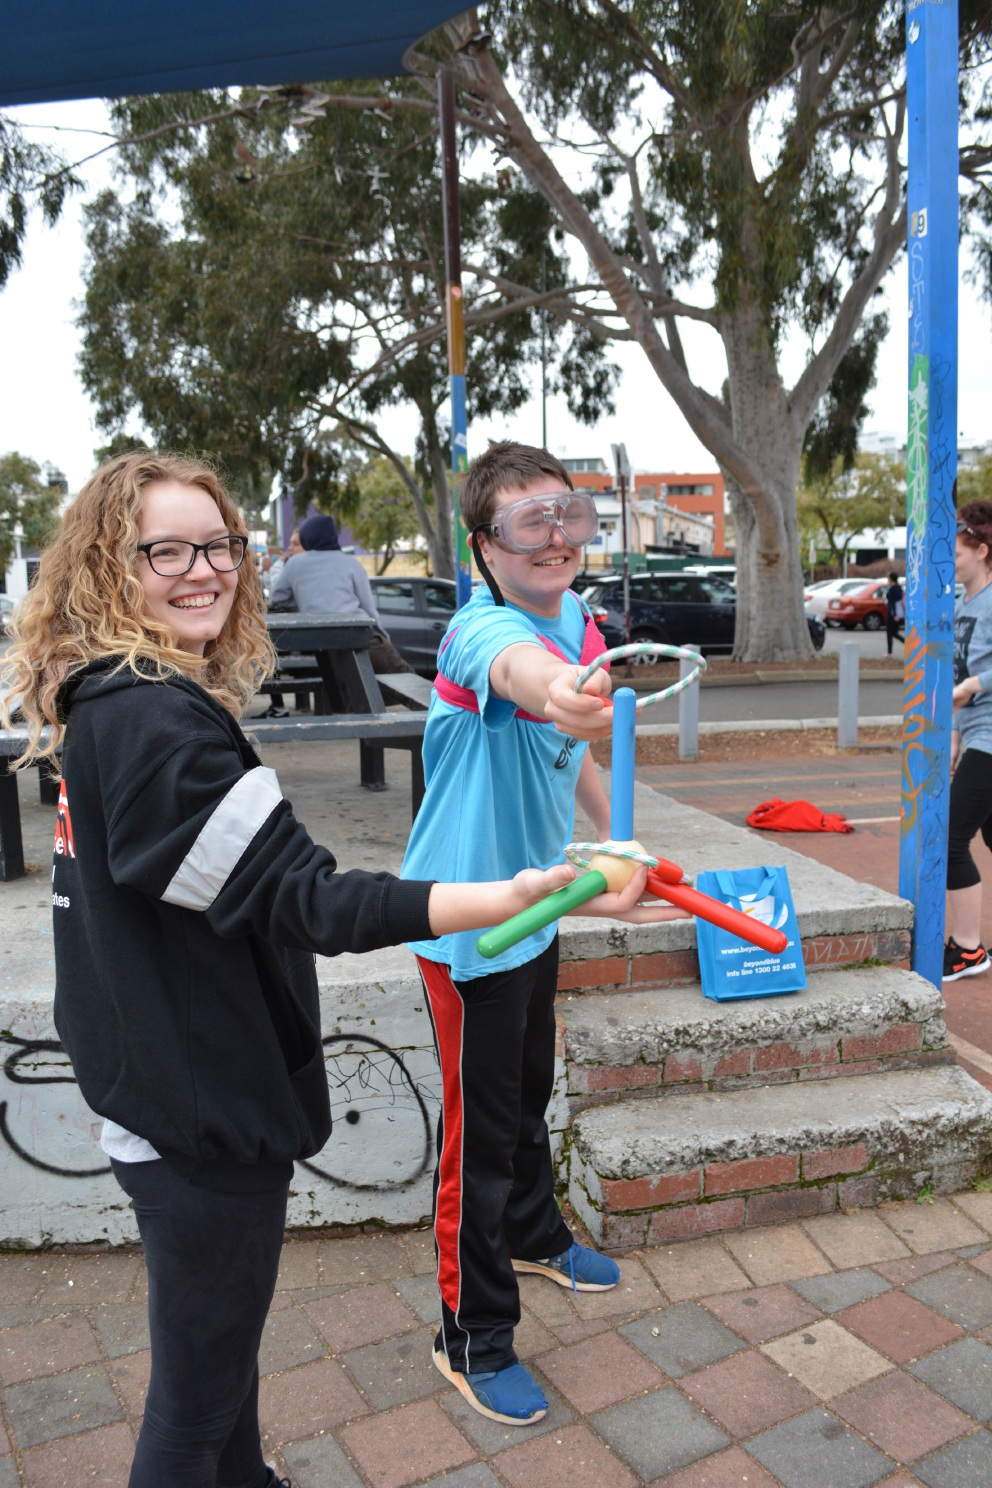 Leederville homeless event draws youths